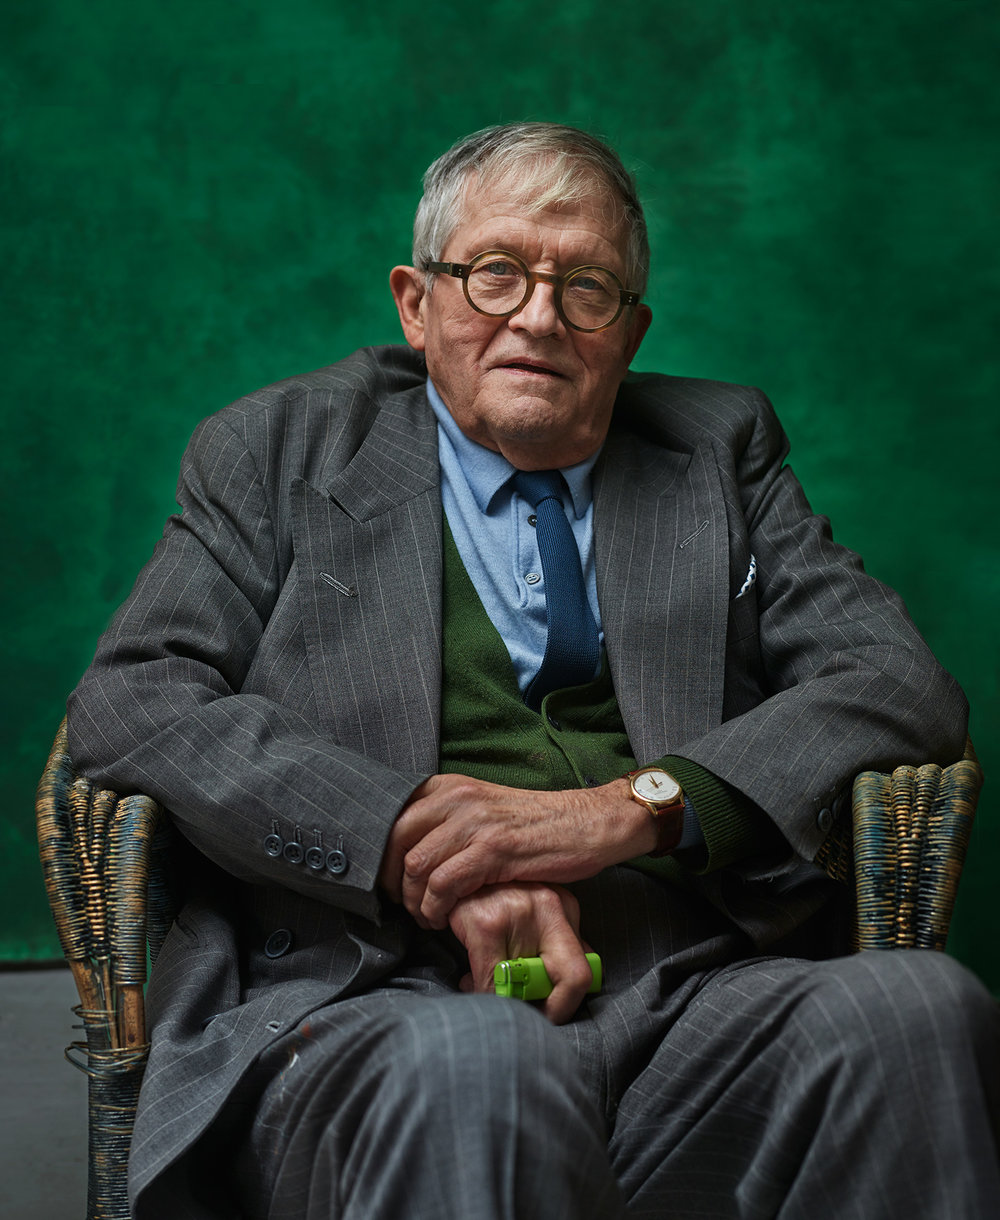 David Hockney wonderful English painter photographed by Chris Floyd represented by Flock